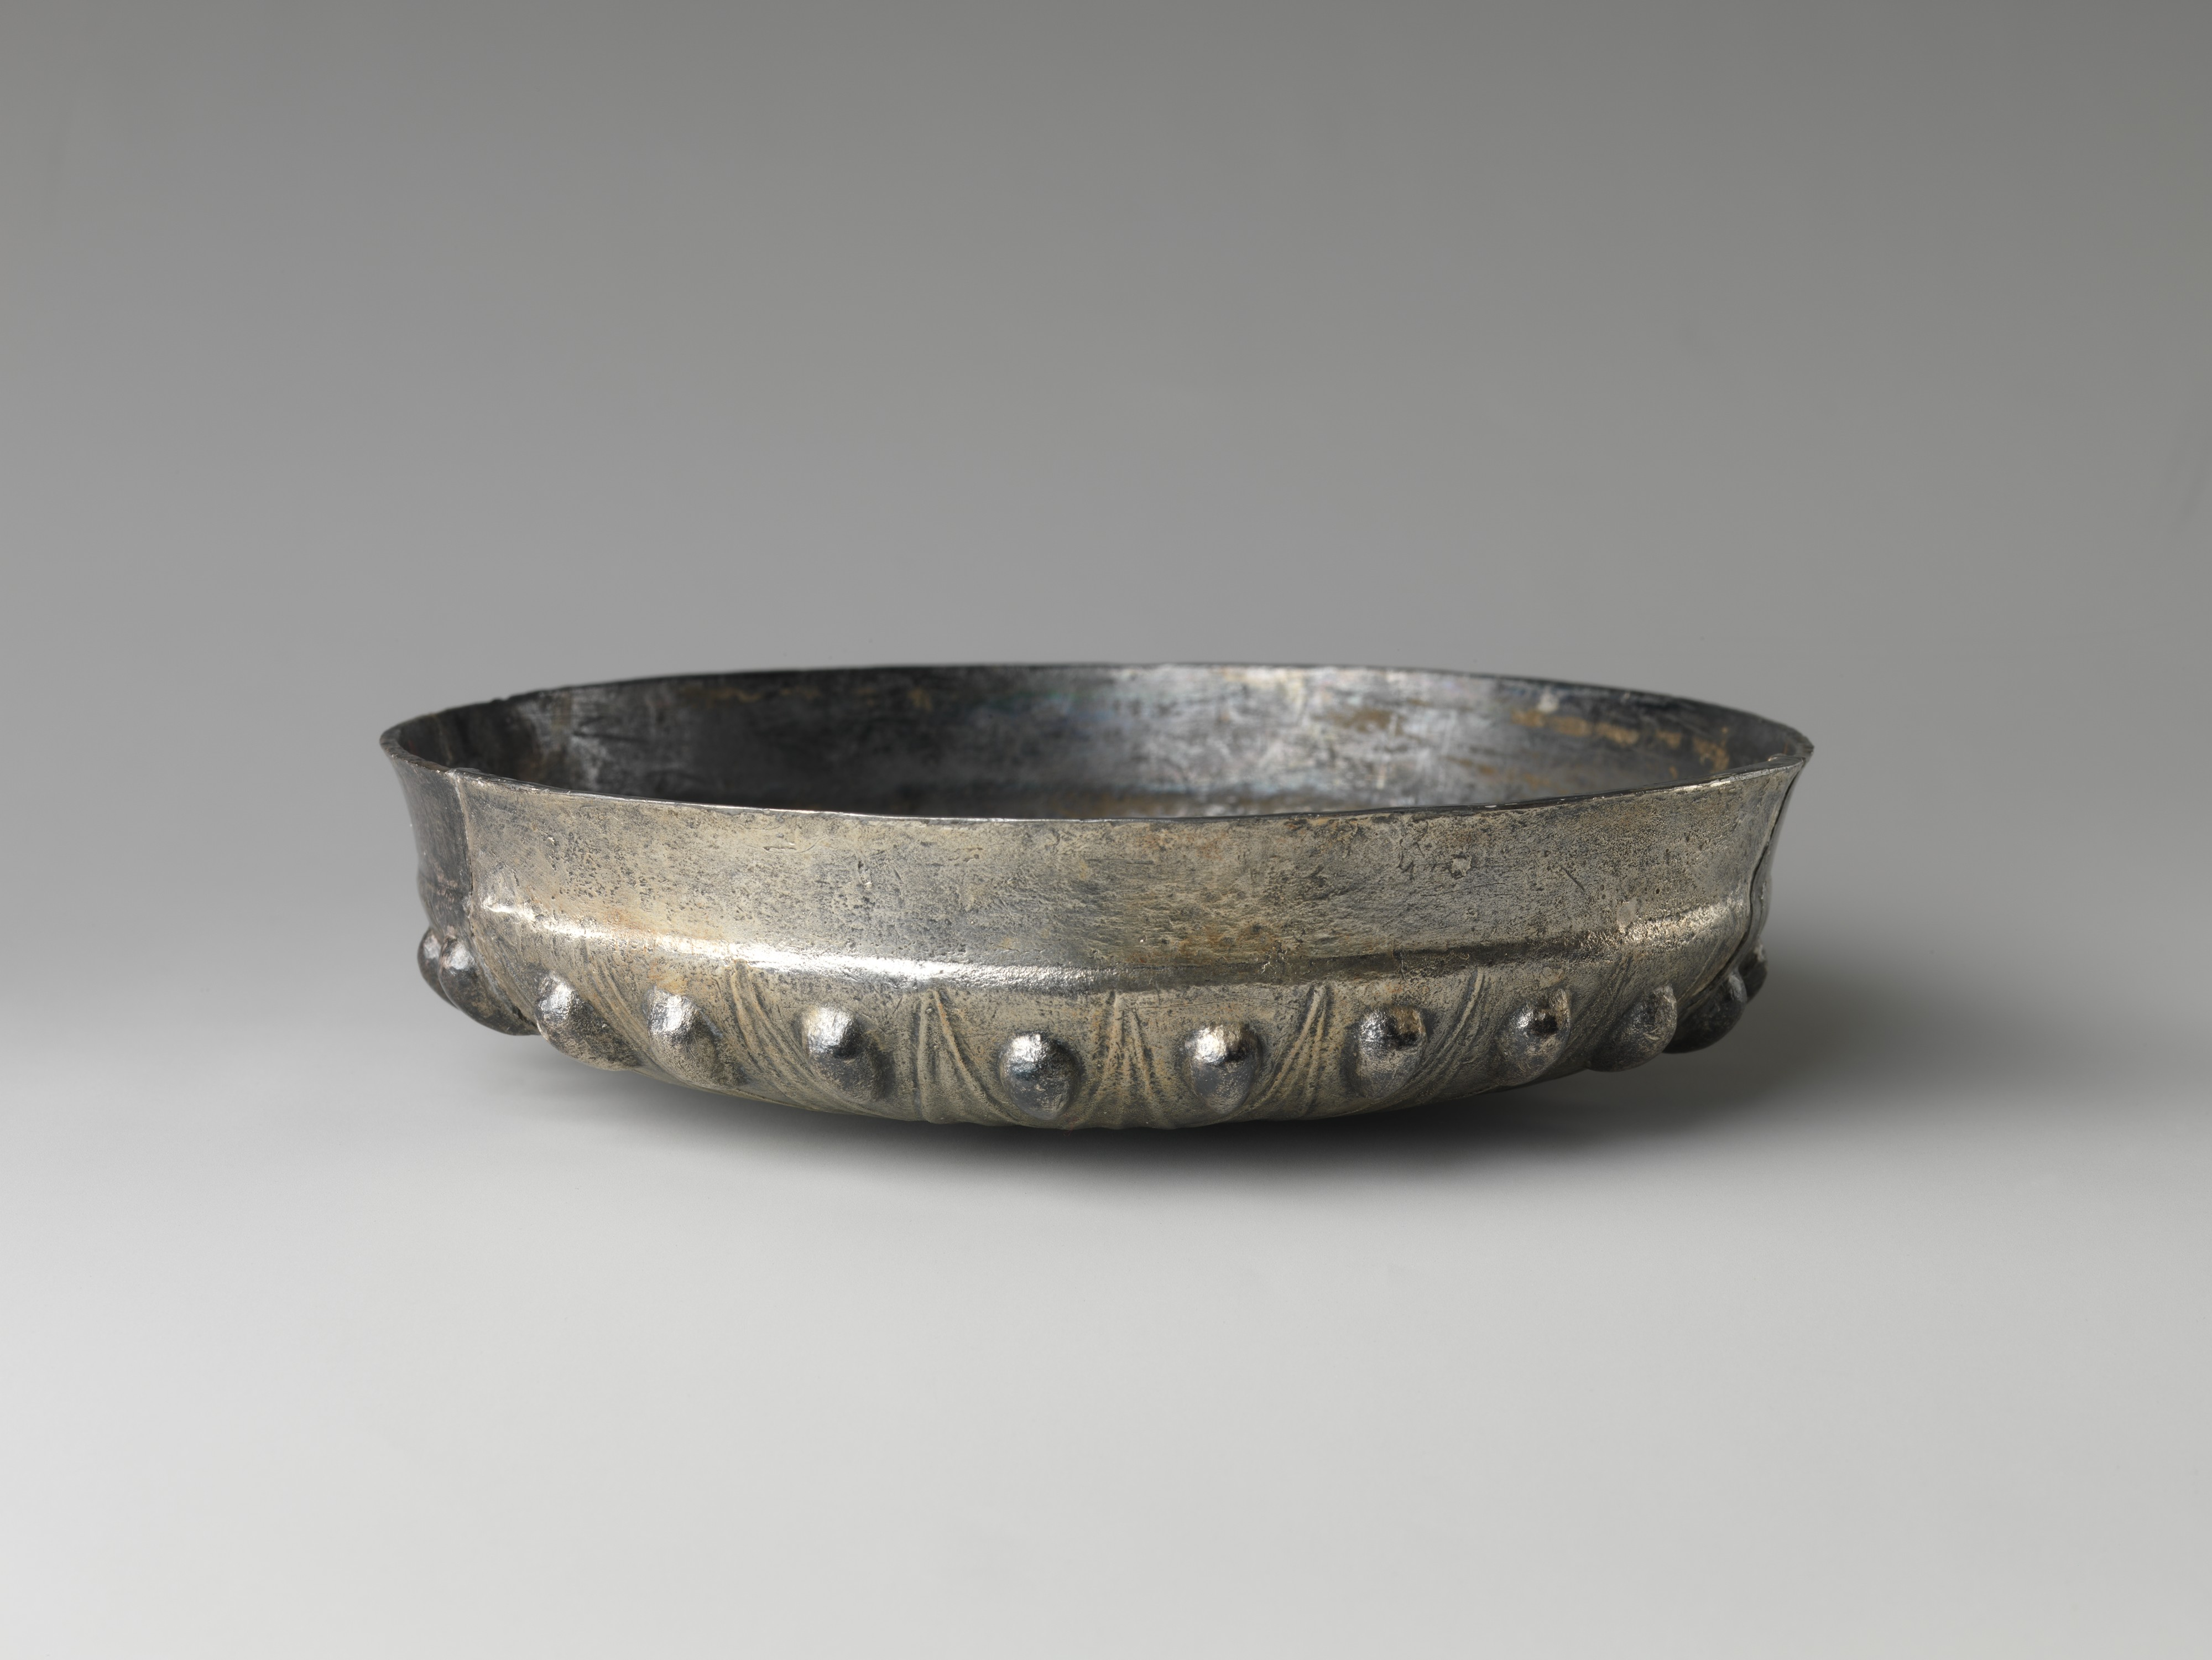 Bowl with bosses and lotus pattern and demotic weight on rim | Late